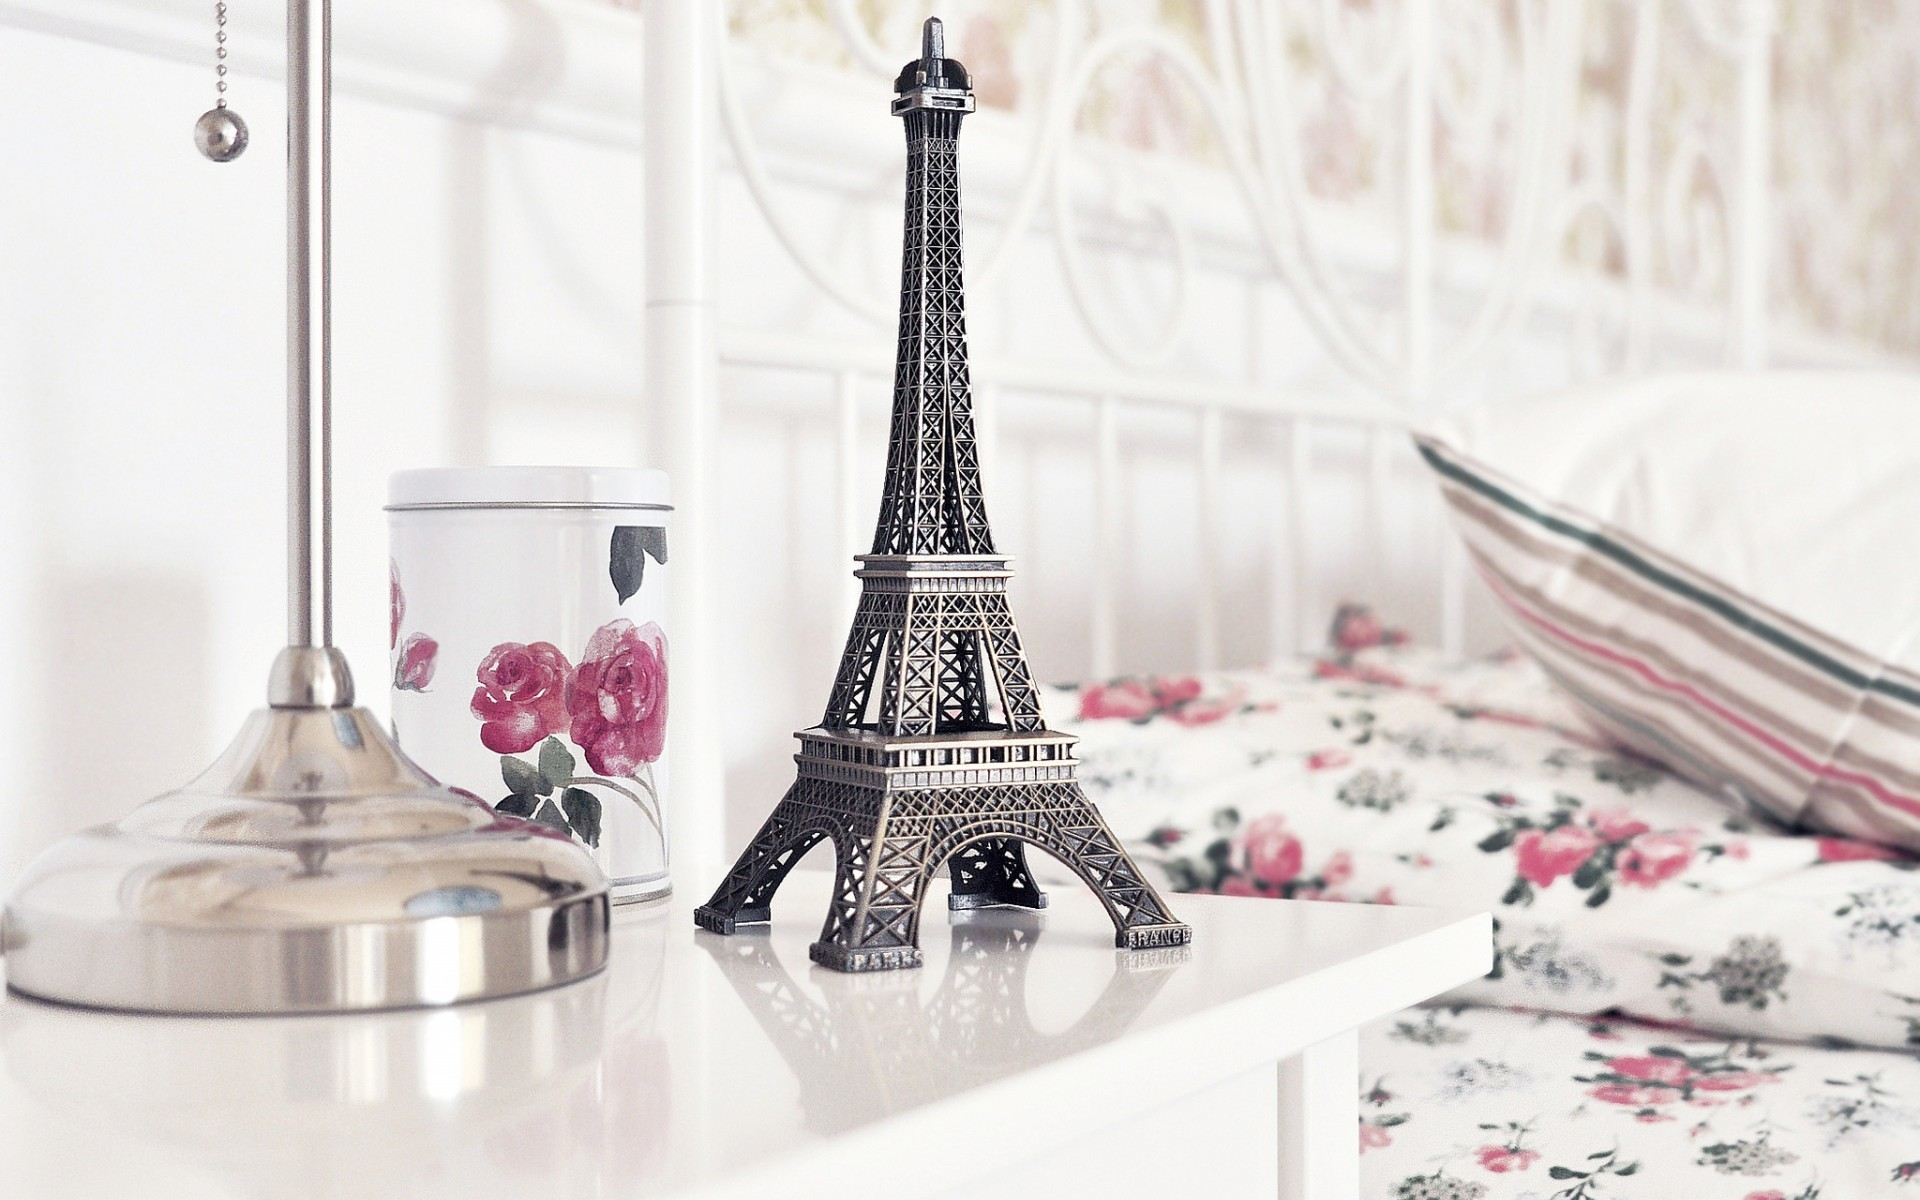 cute paris wallpaper (72+ images)